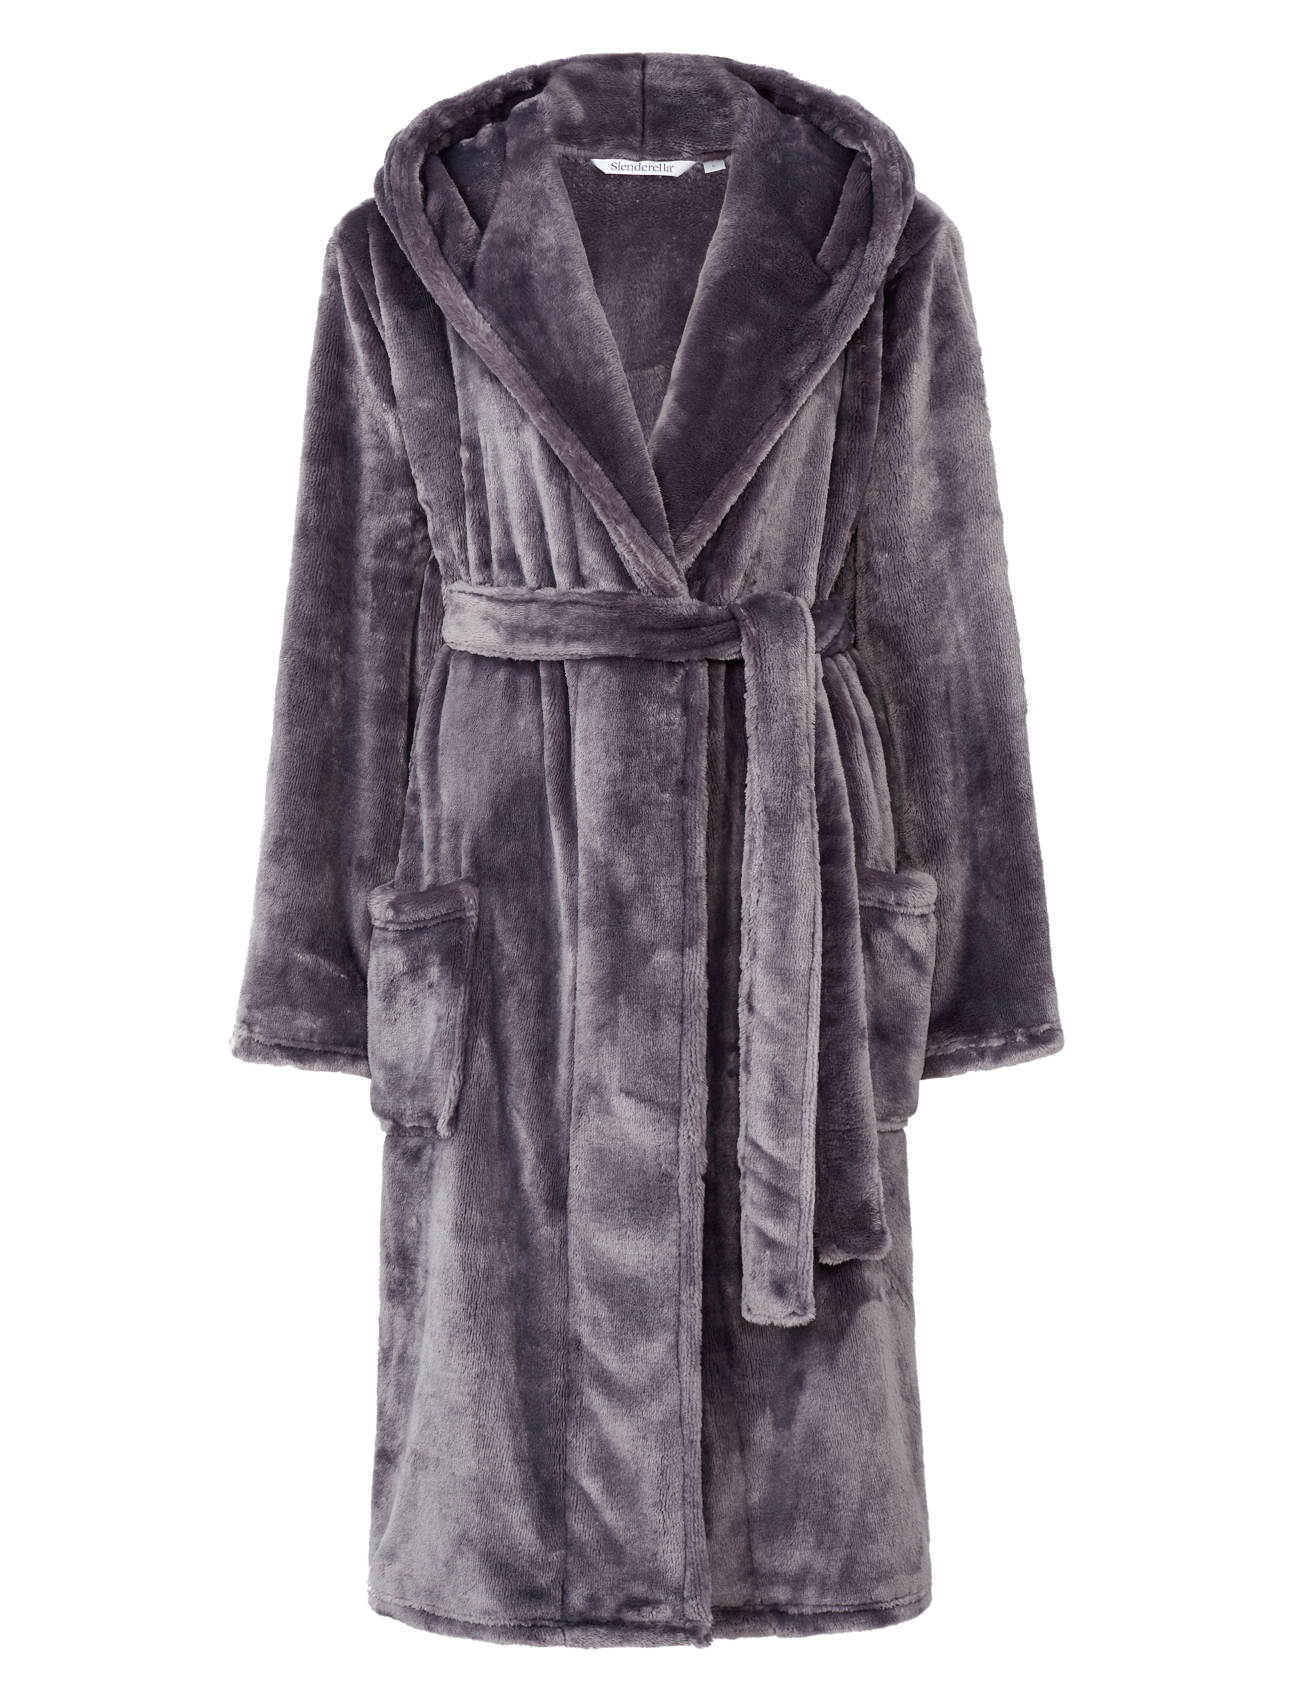 Ladies Grey Dressing Gown Finest Selection D0fd9 8d4d4